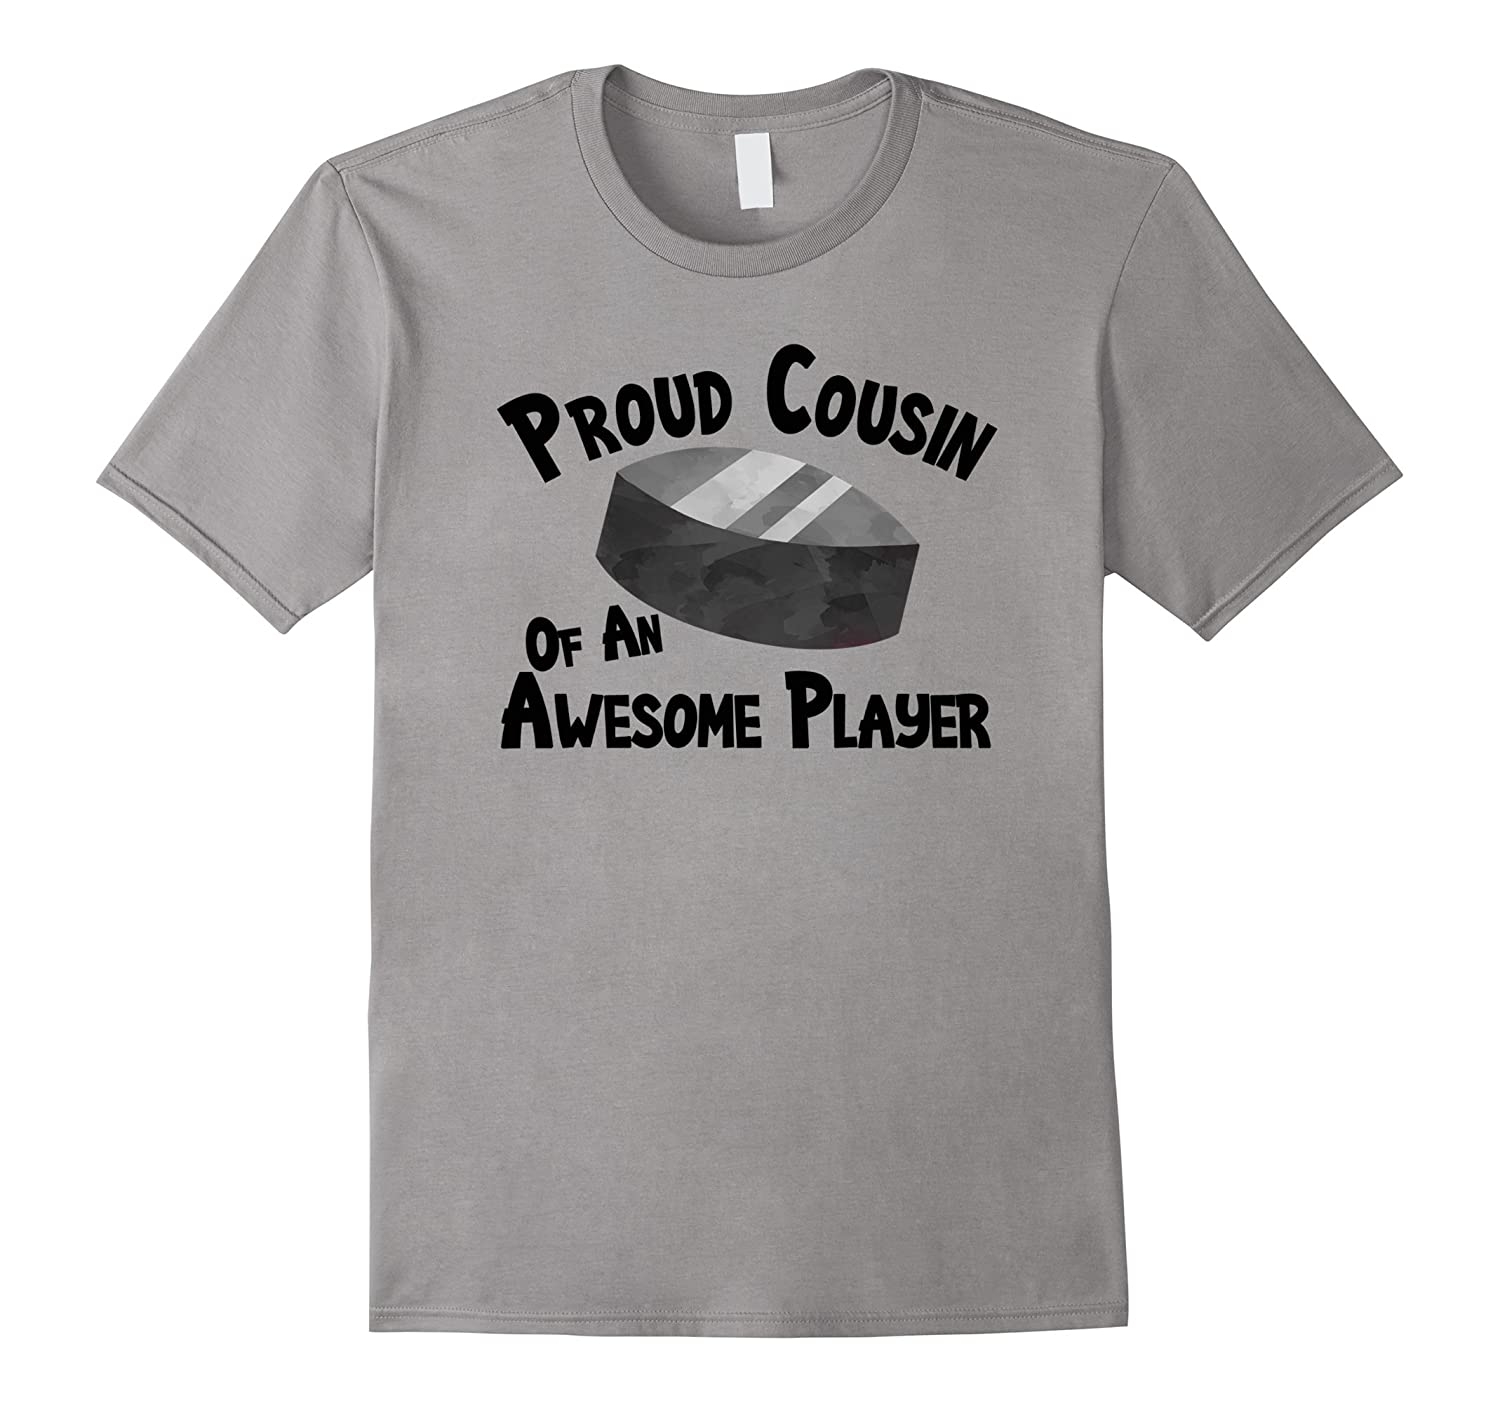 Hockey T-Shirt Proud Cousin of an Awesome Player Tee Shirt-FL